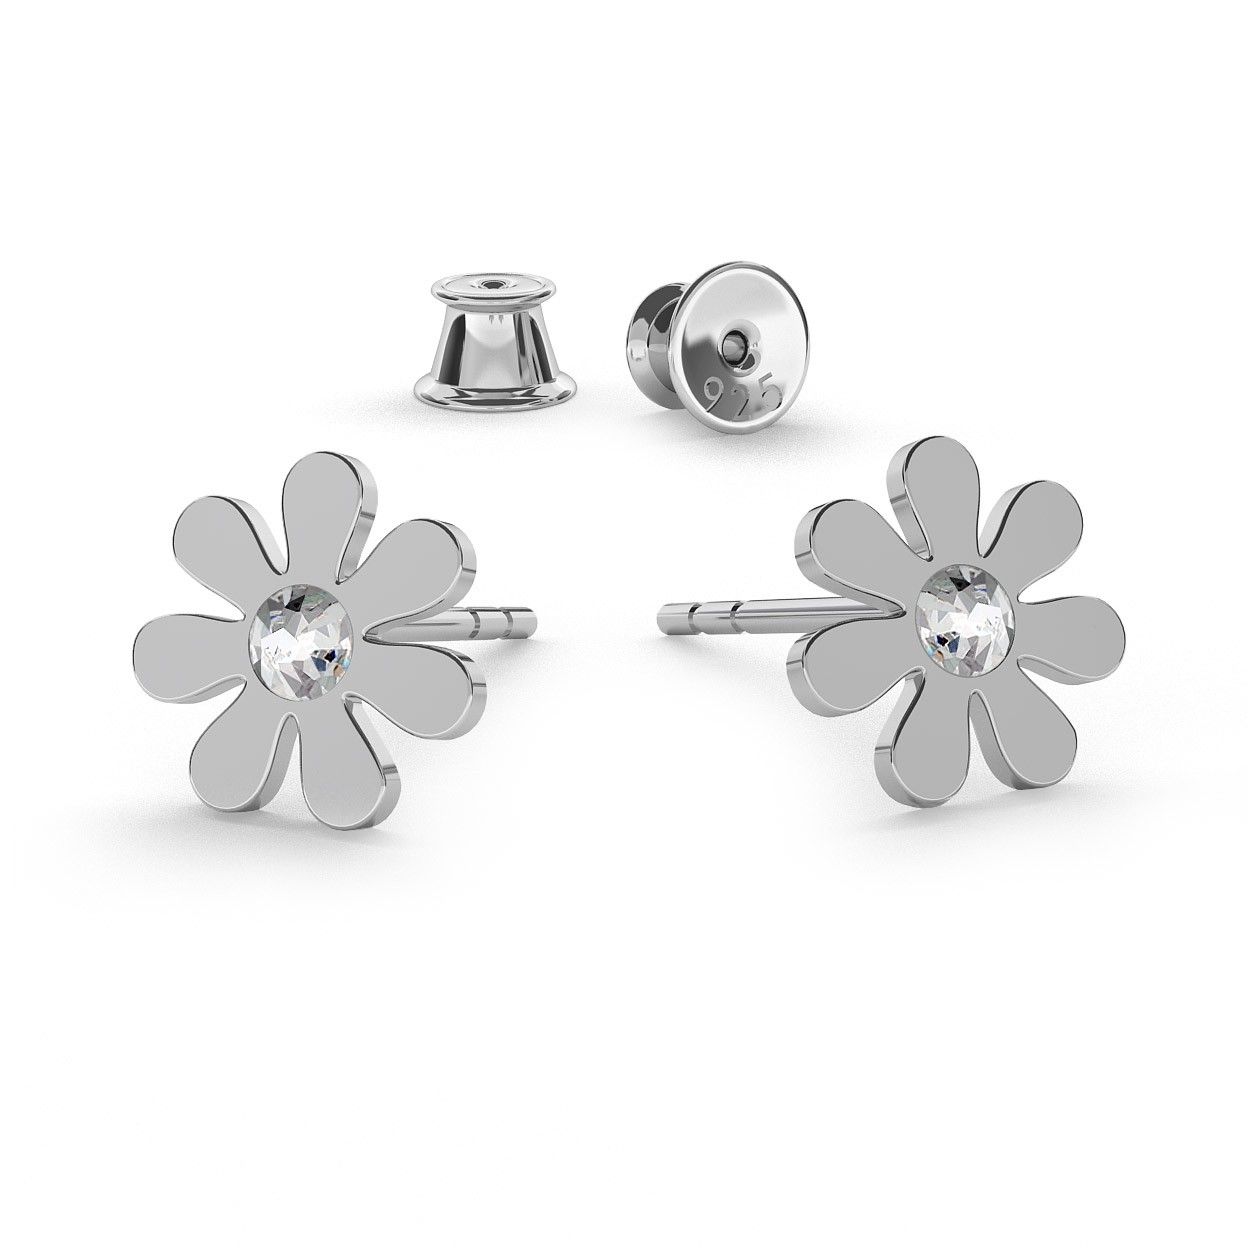 DAISY EARRINGS STUDS, SWAROVSKI 2058 SS 7, STERLING SILVER (925) RHODIUM OR GOLD PLATED